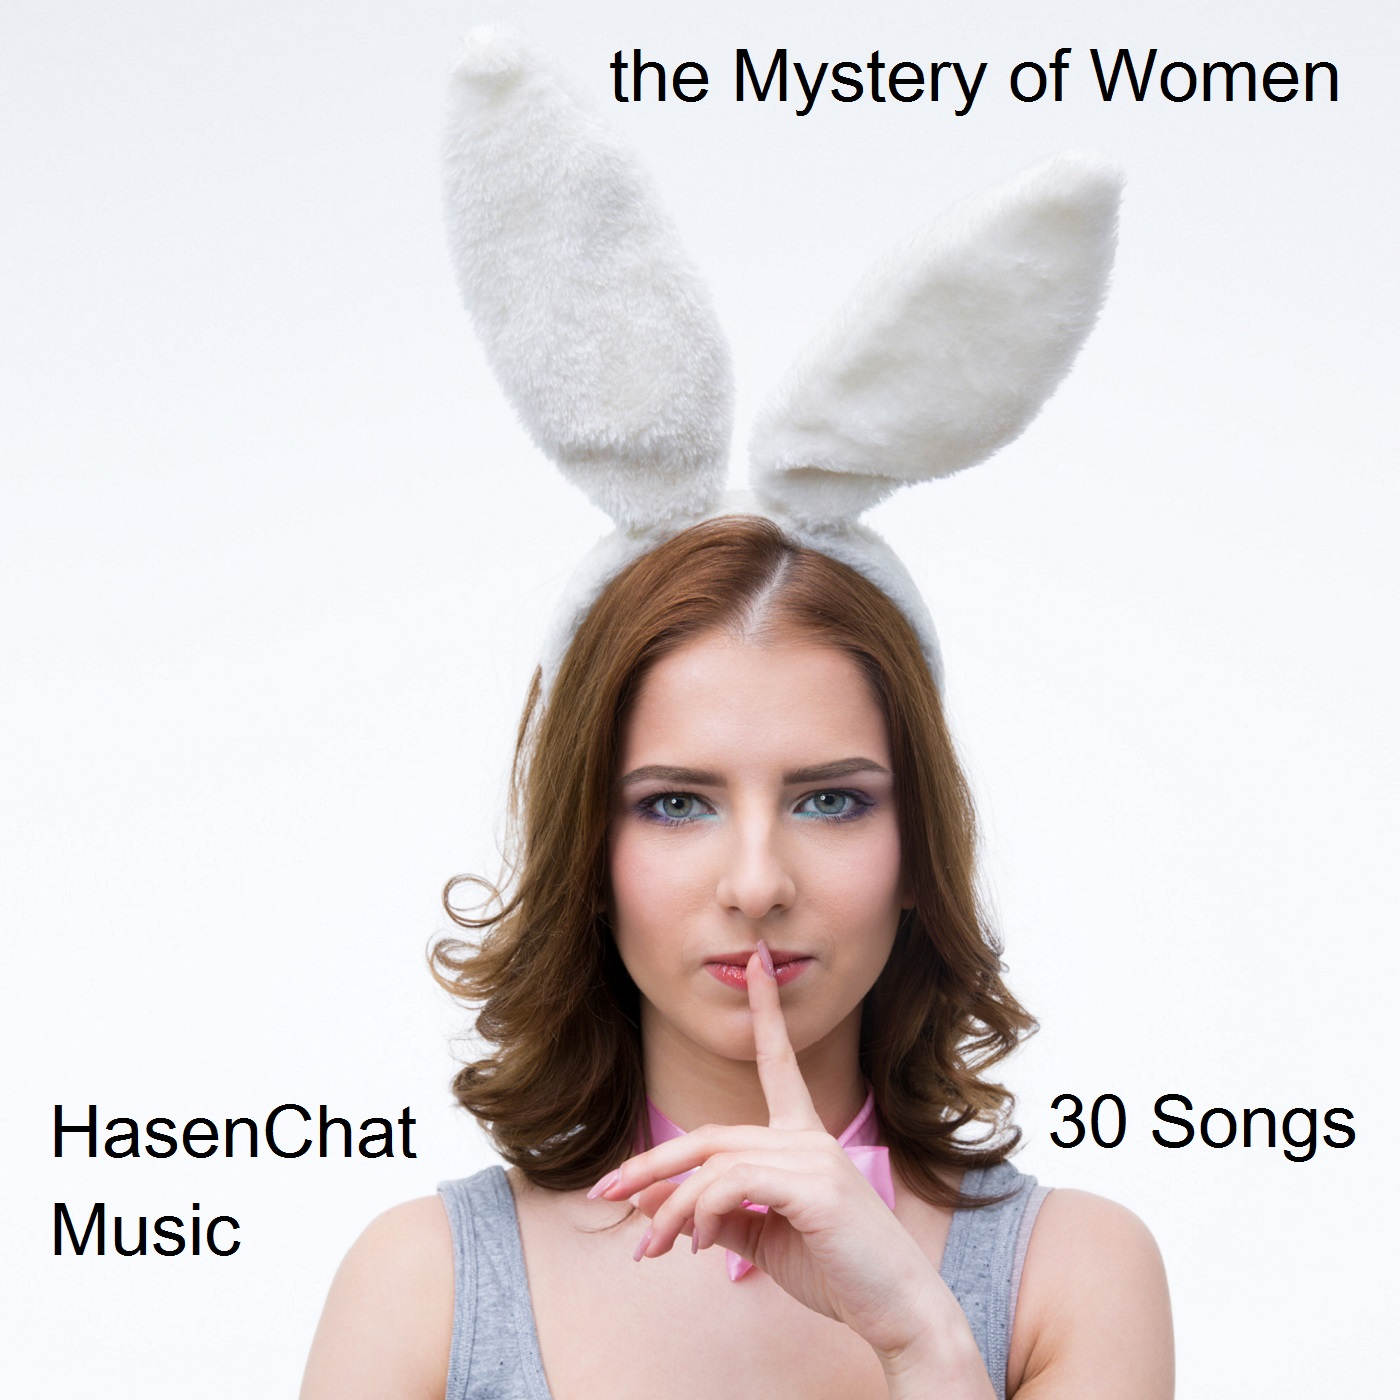 HasenChat Music - The Mystery of Woman